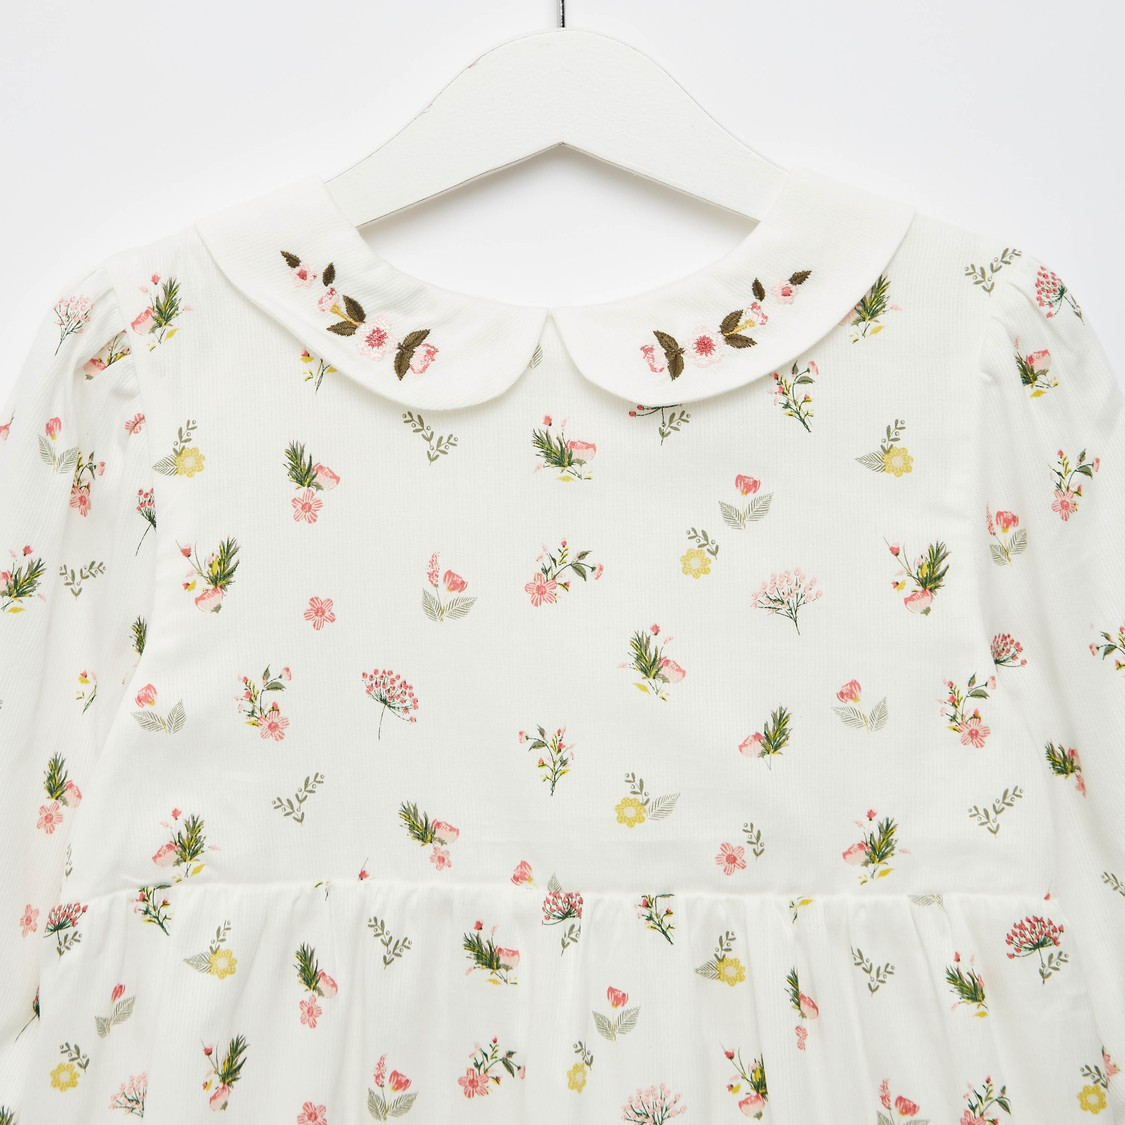 All-Over Floral Print Dress with Peter Pan Collar and 3/4 Sleeves